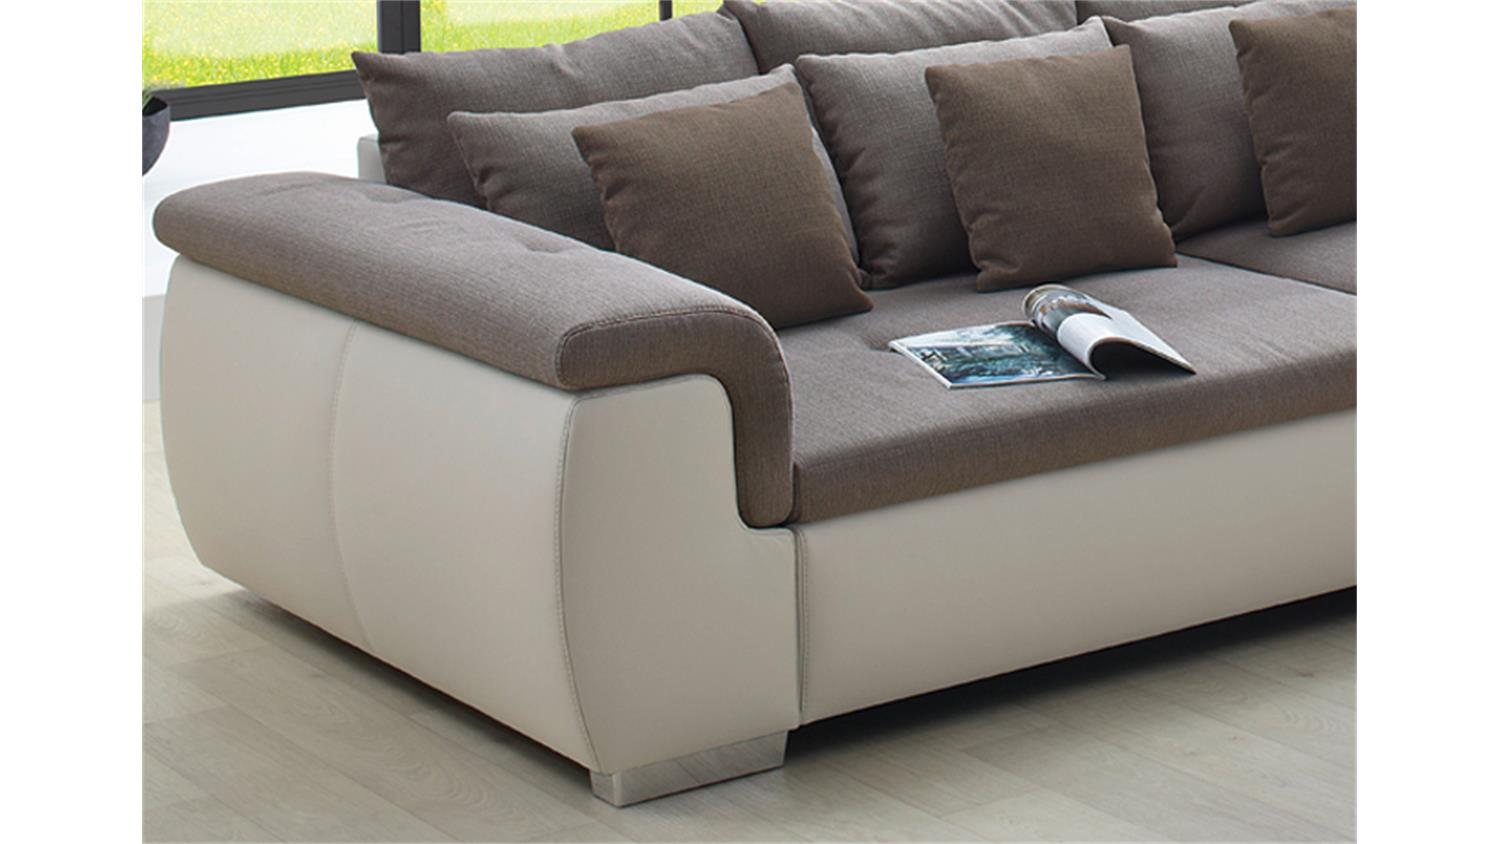 Big Sofa Gnstig Latest Billig Tolle Bigsofa Susi Cm Wollstoff Grau Big Sofa Oder With Big Sofa